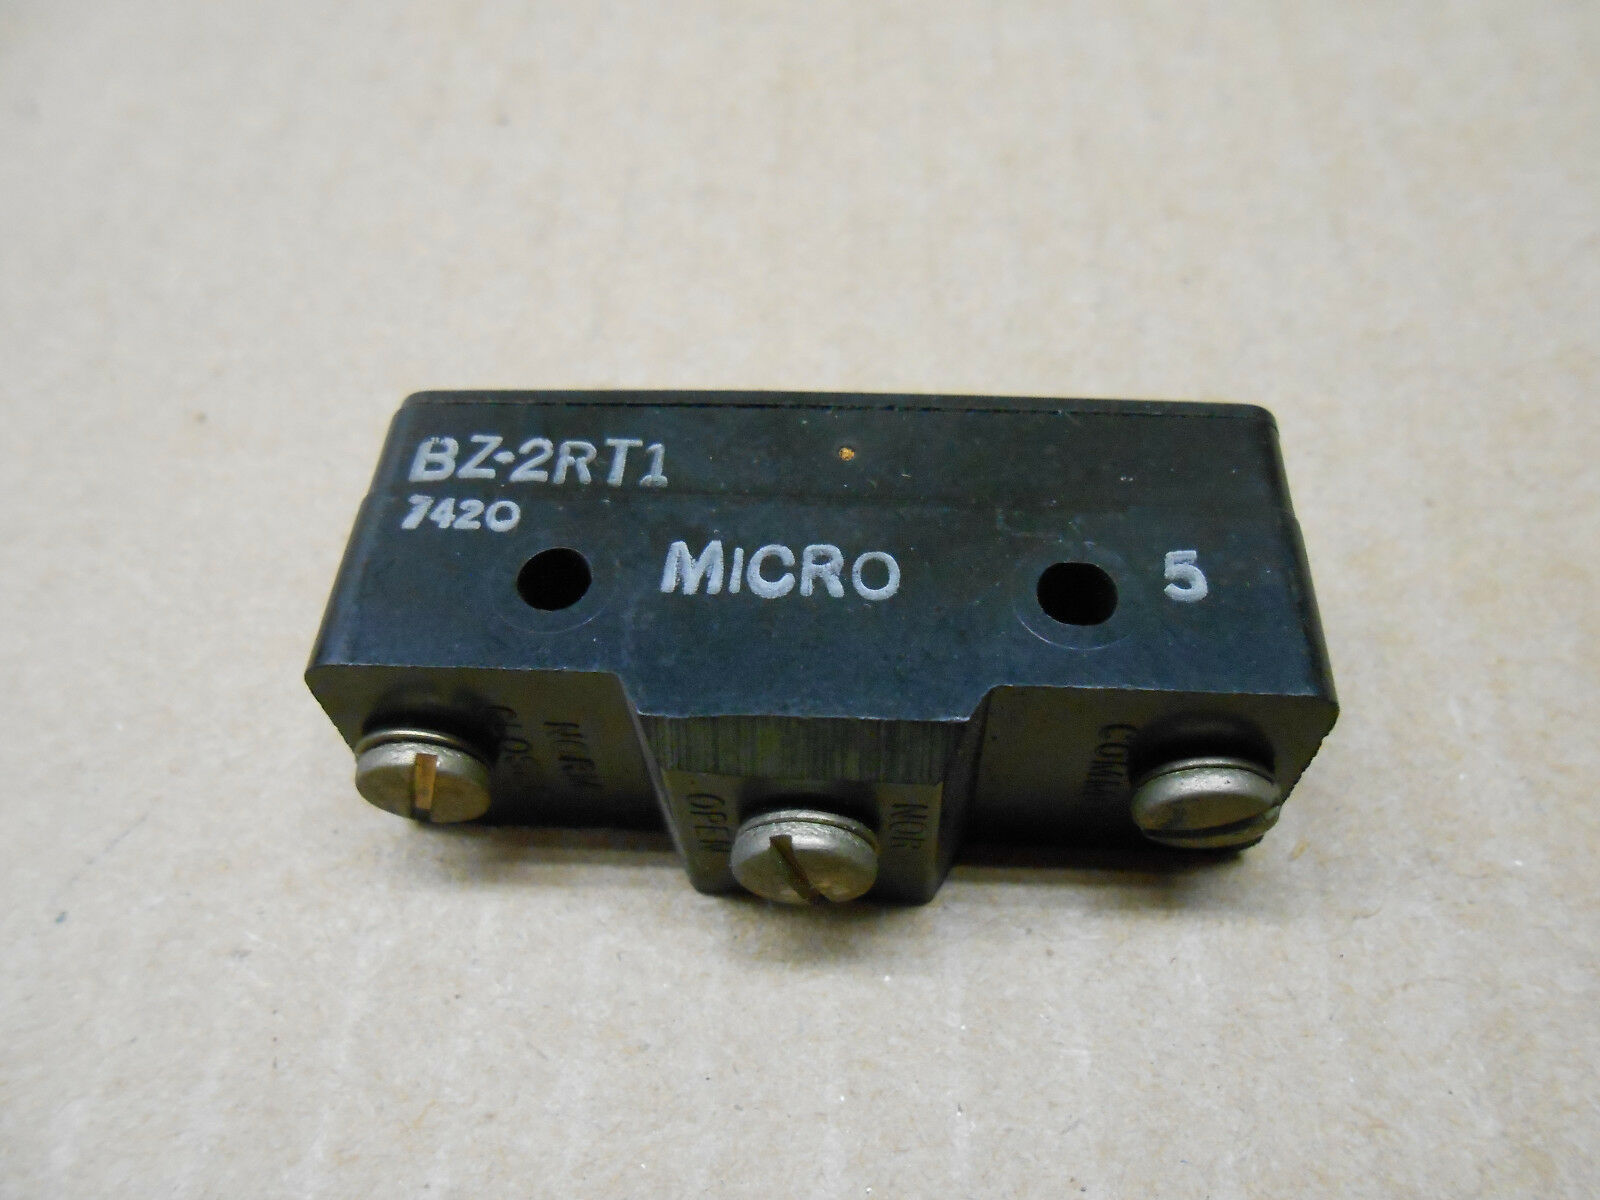 1 Honeywell Micro Switch Bz 2rt1 Bz2rt1 Snap Action Basic Limit Lever Actuator Microswitch Spdt 5a Ebay Picture Of 3